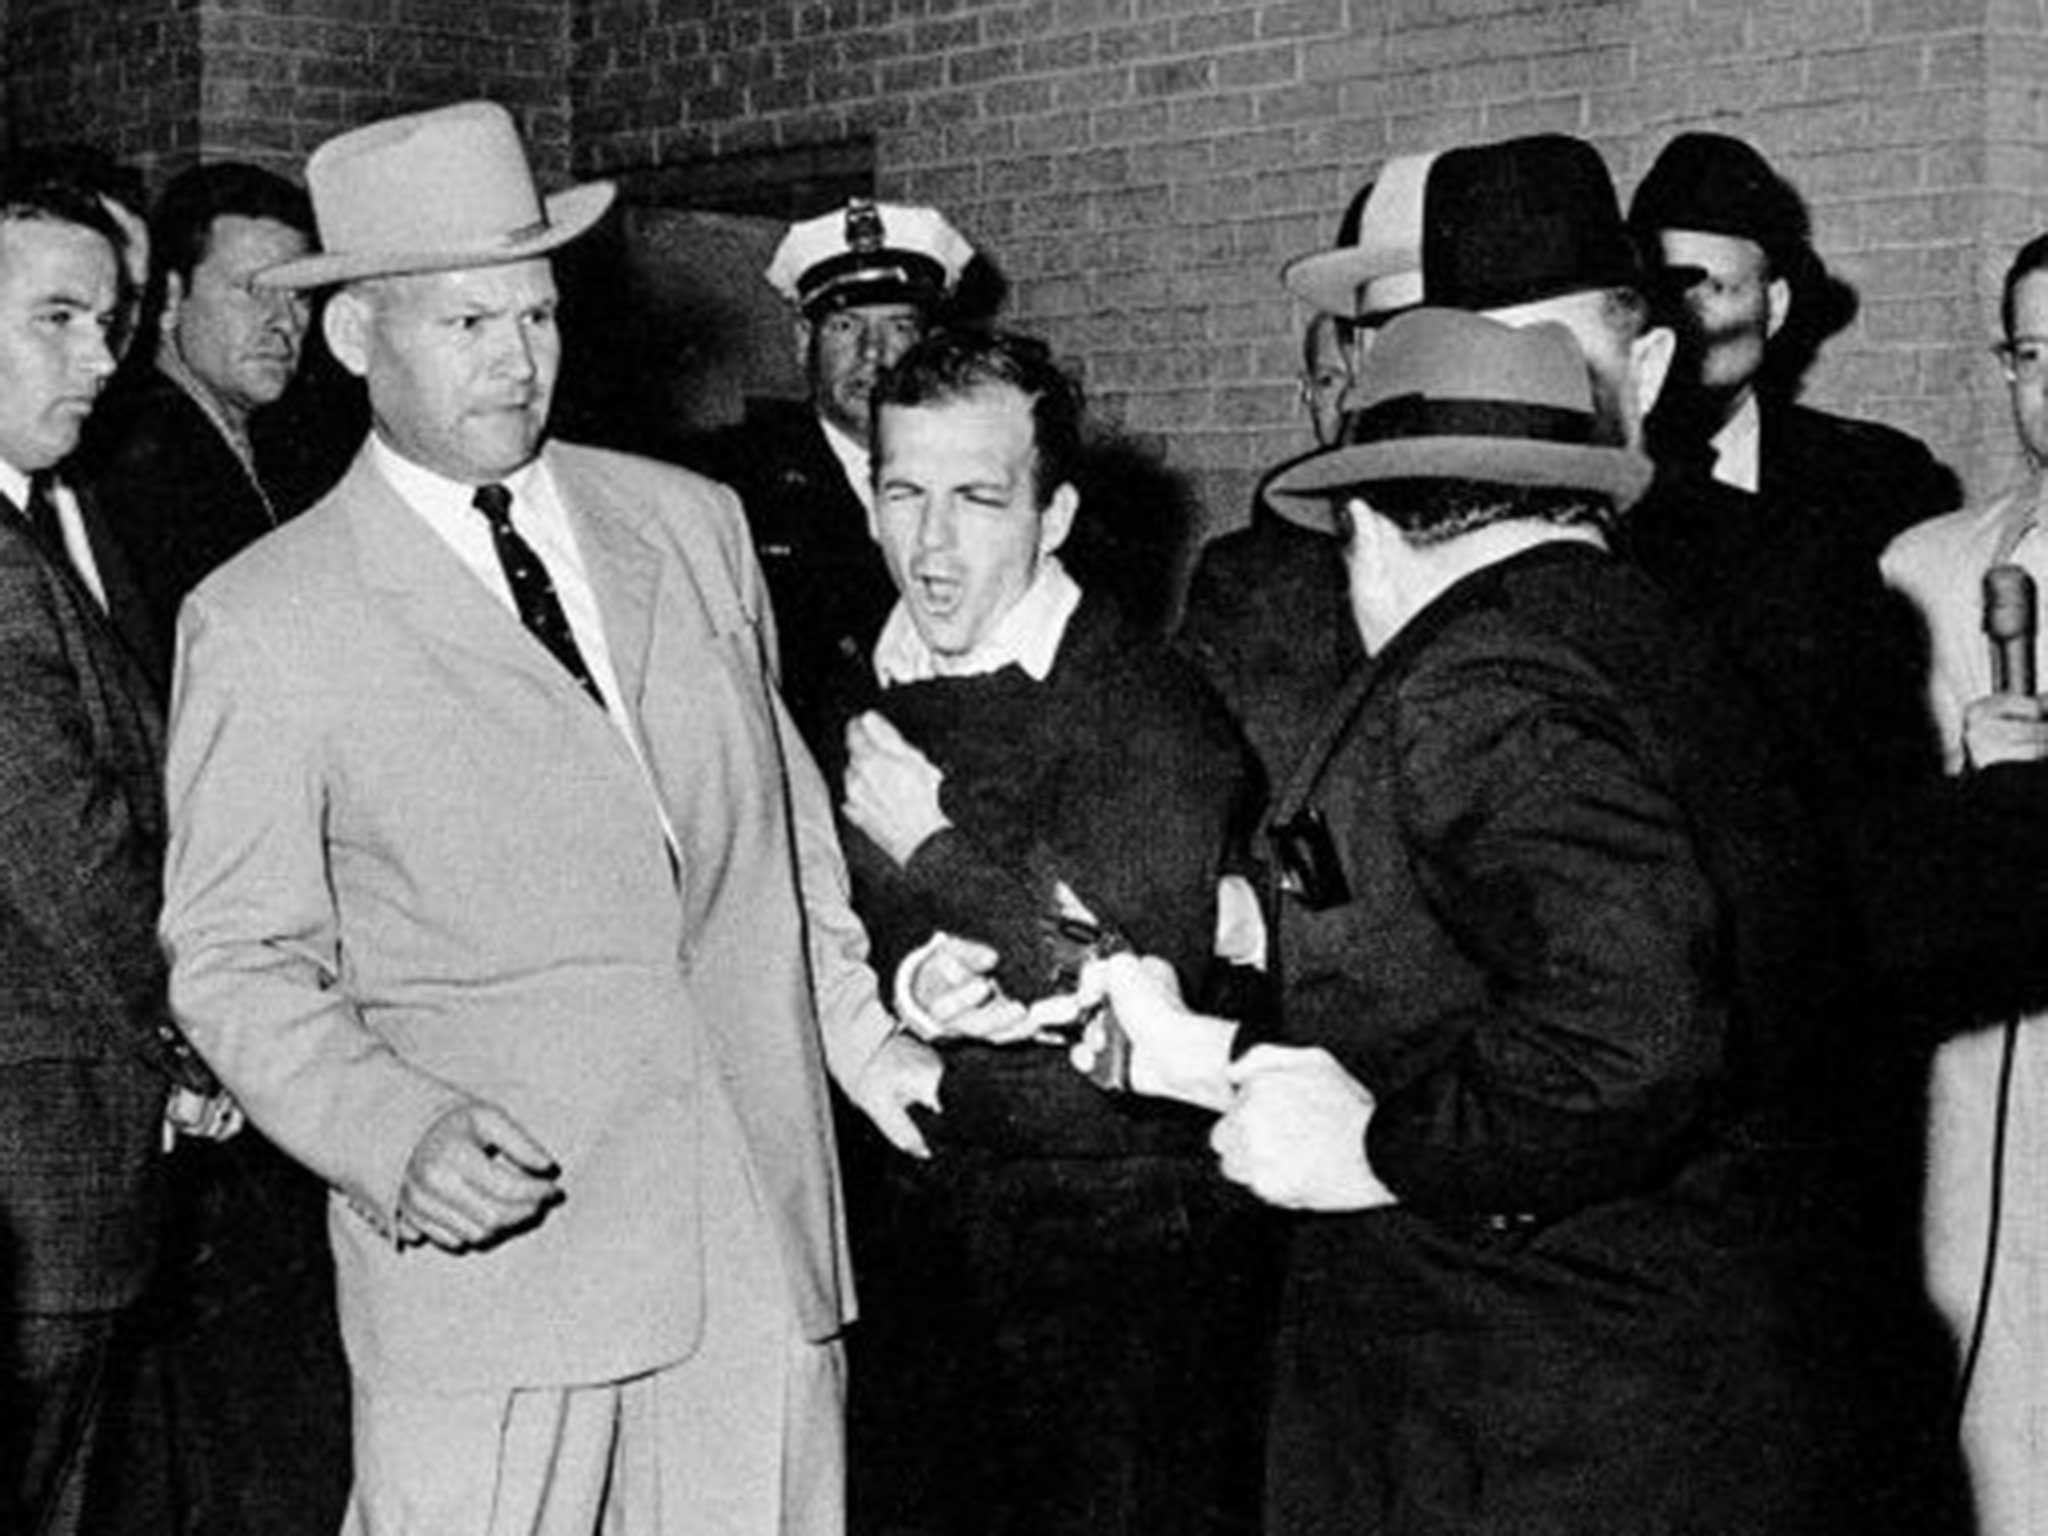 Lee Harvey Oswalds Killer Jack Ruby Told Fbi Informant To Watch 1 8 Quot Stereo Plug Wiring Diagram The Fireworks Hours Before Jfks Assasination Independent